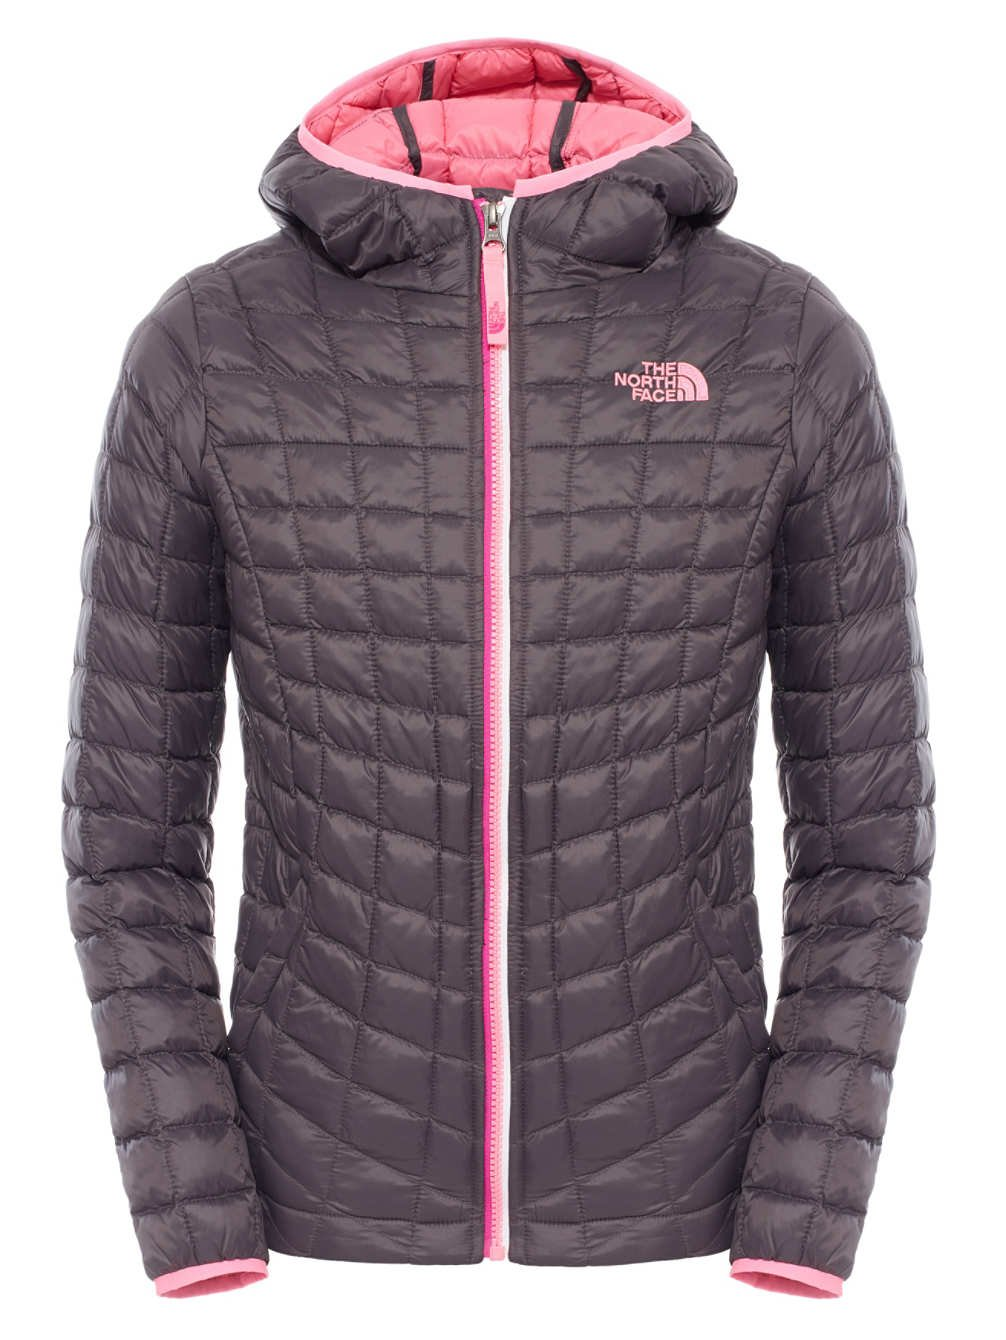 The North Face Thermoball Hoodie Girls Graphite Grey XL18 by The North Face